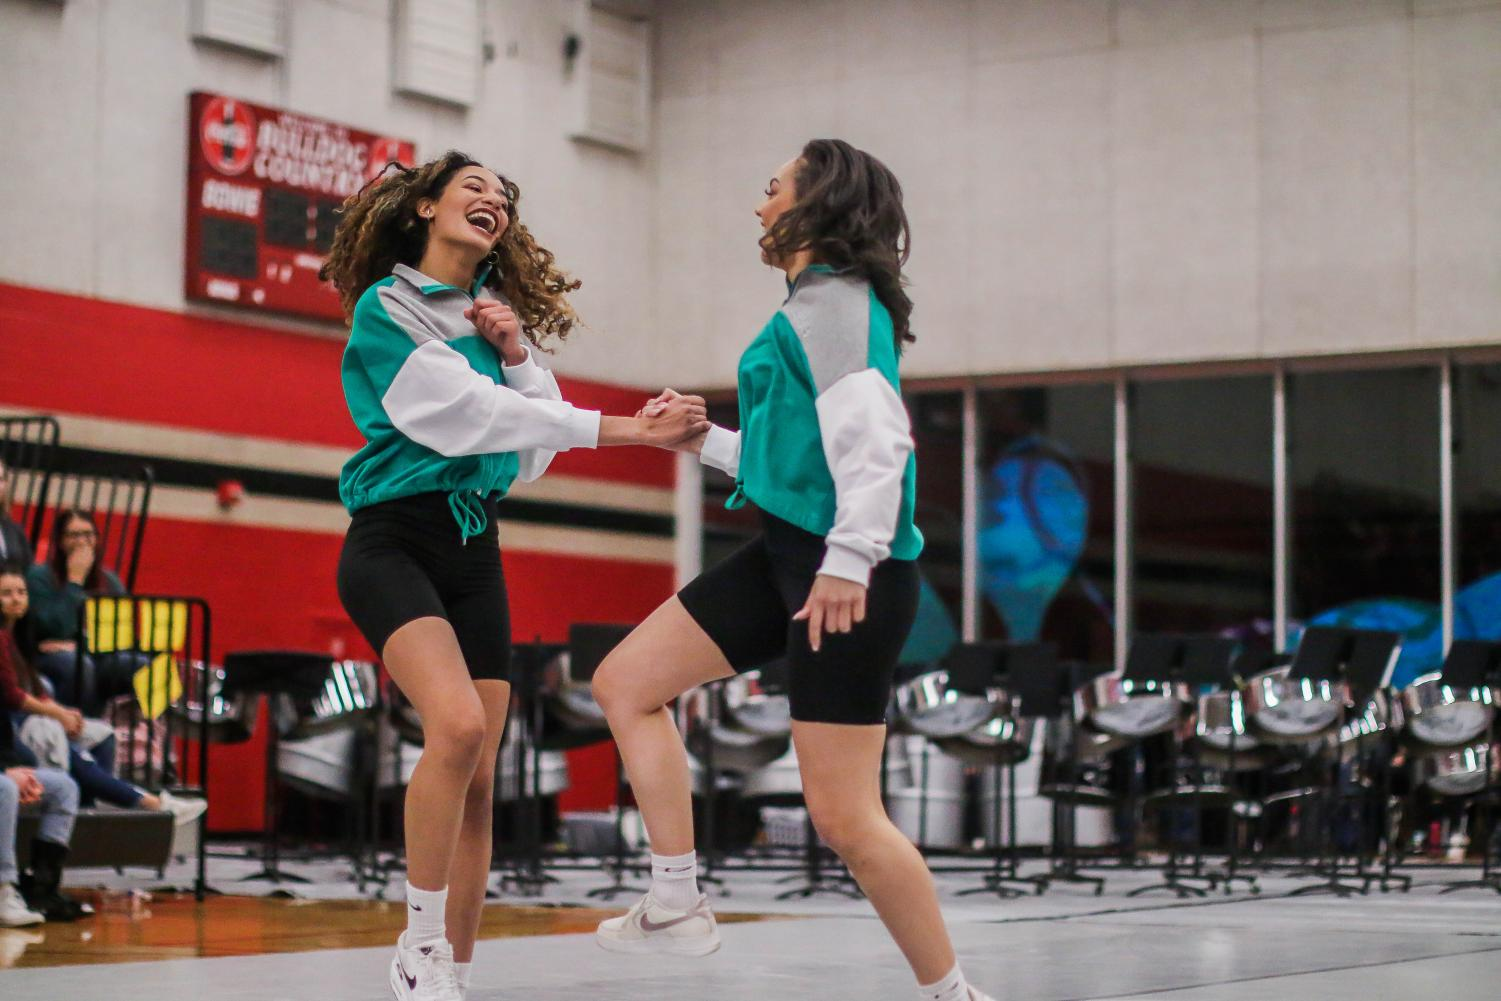 Nyah Bernucho and Kaeleigh Chambers pair up in the assembly's choreographed dance for the MCAC. The dancers also preformed at No Place for Hate.